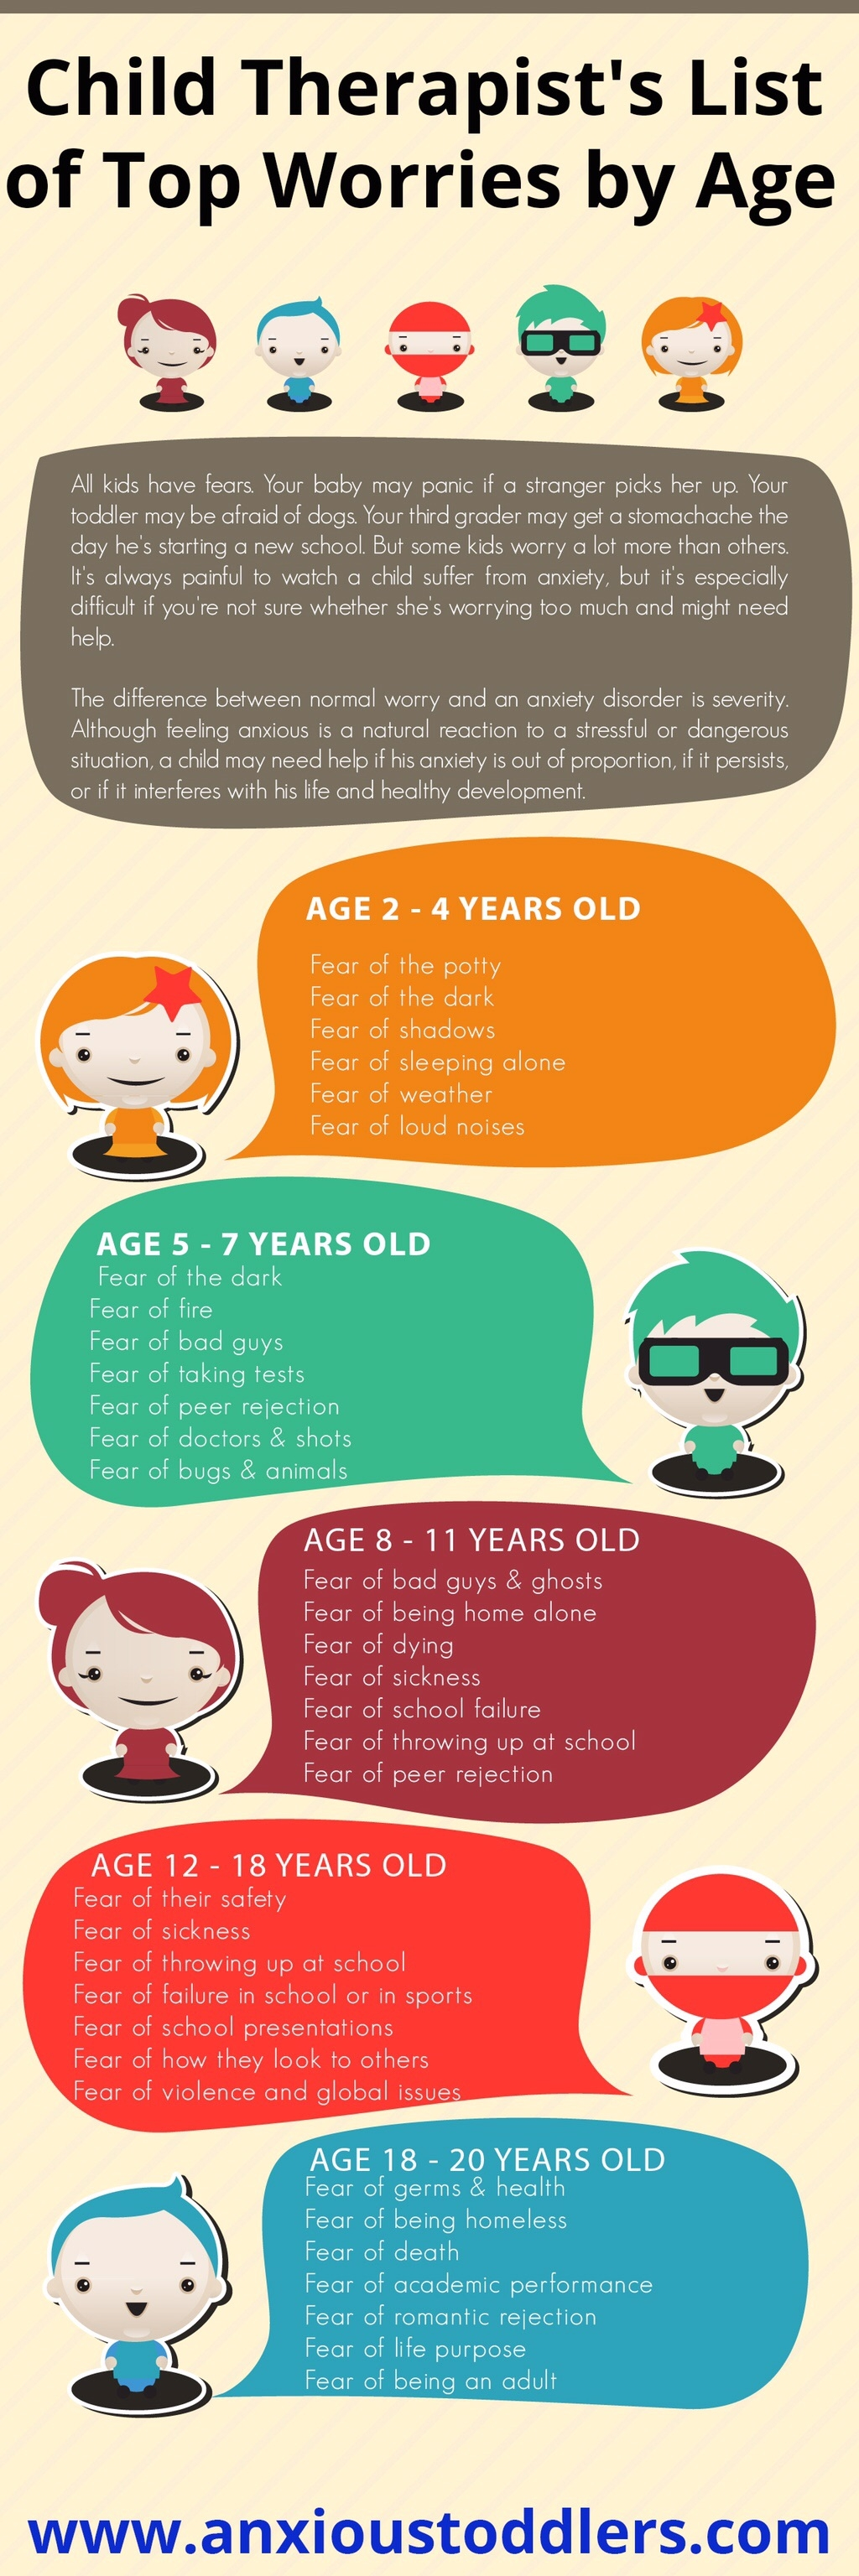 childs-therapist-top-worries-by-age